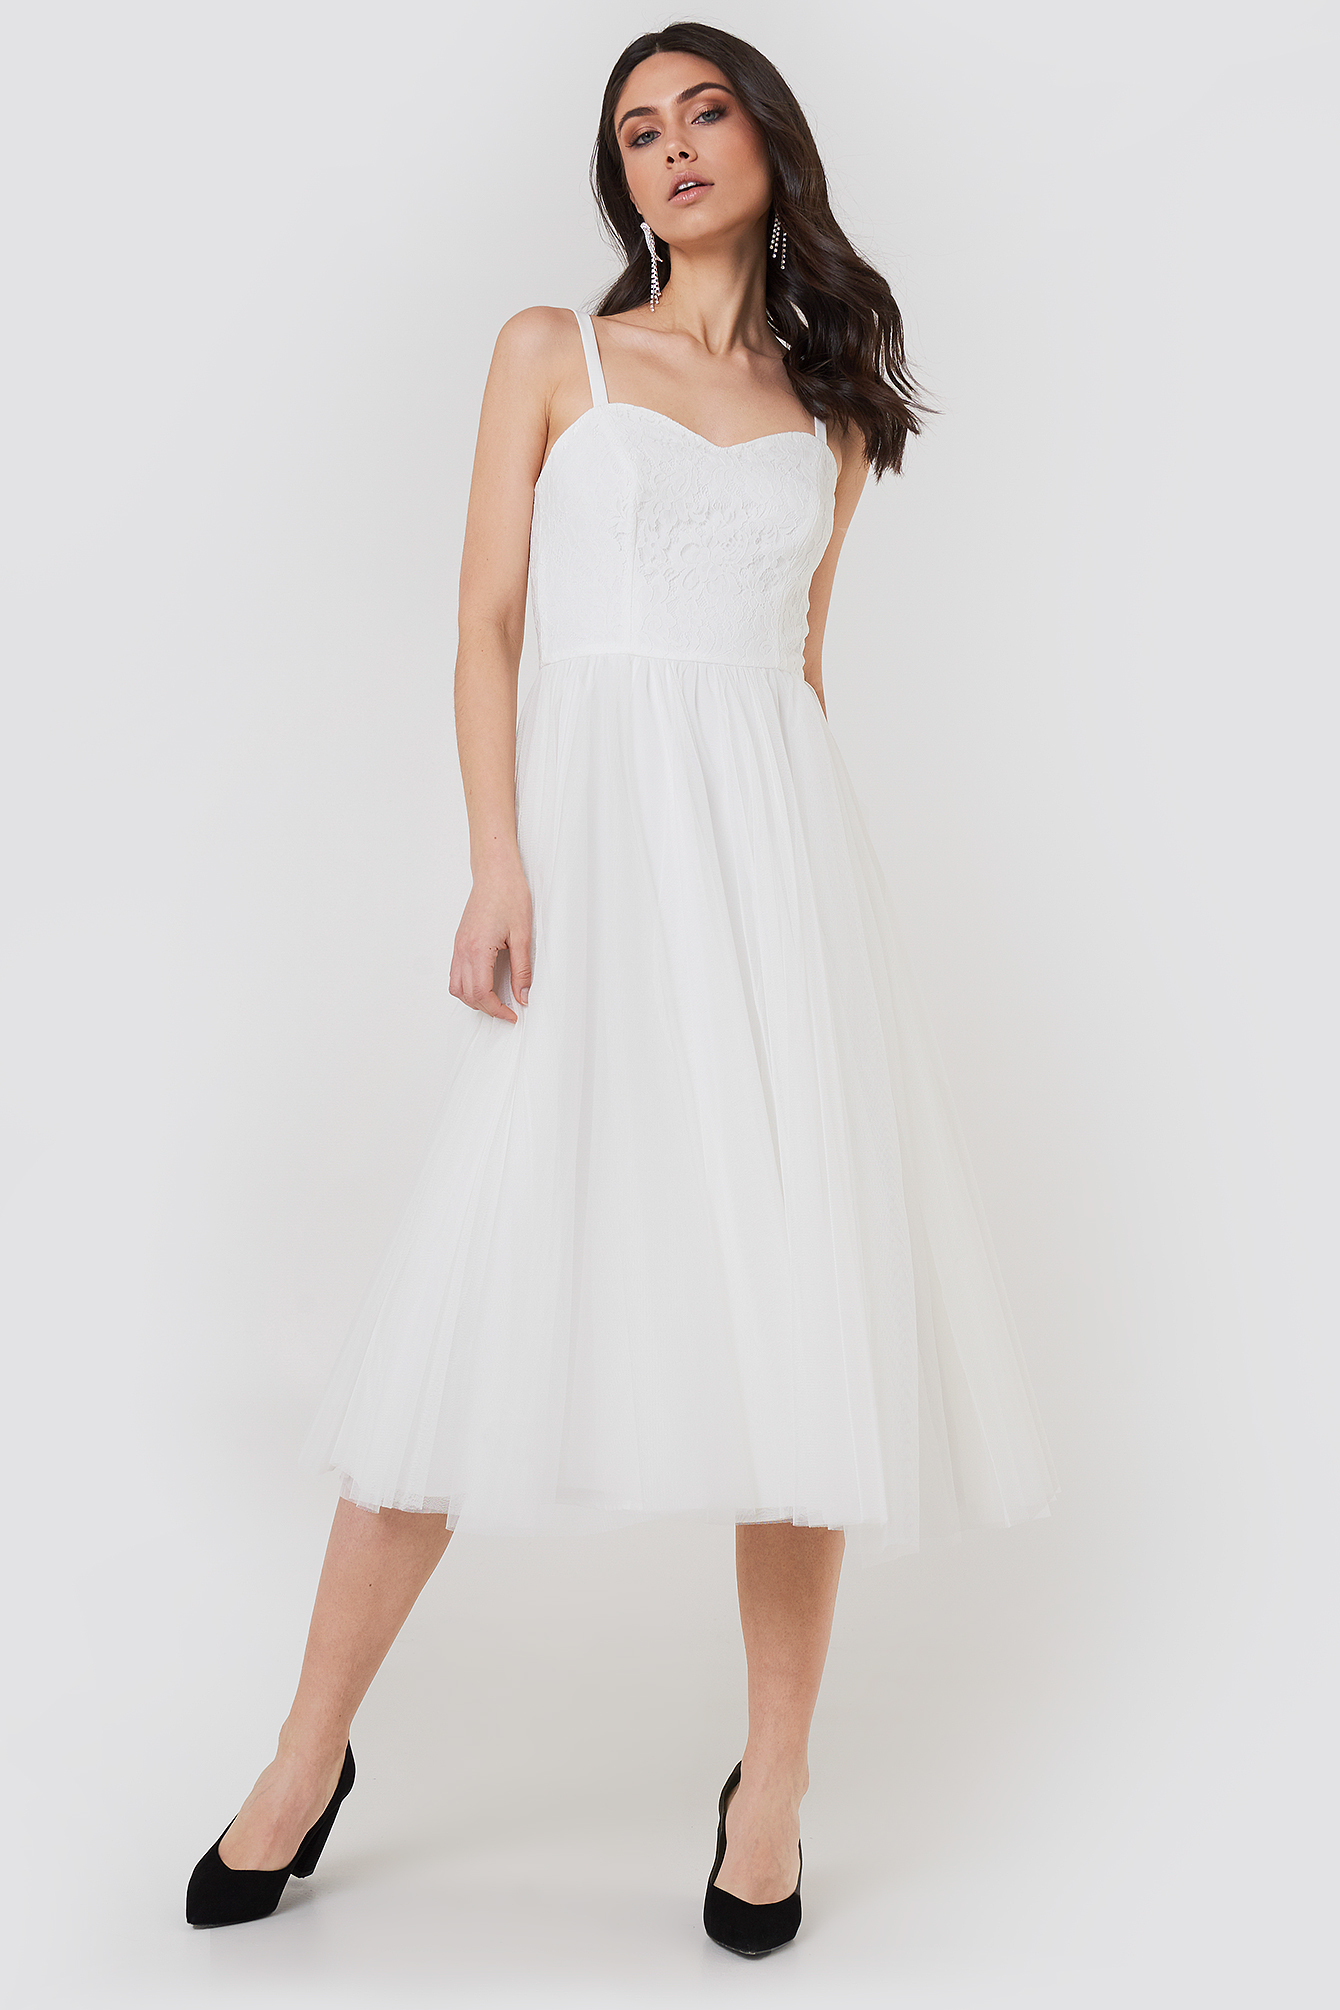 AMANDA DRESS - WHITE, OFFWHITE